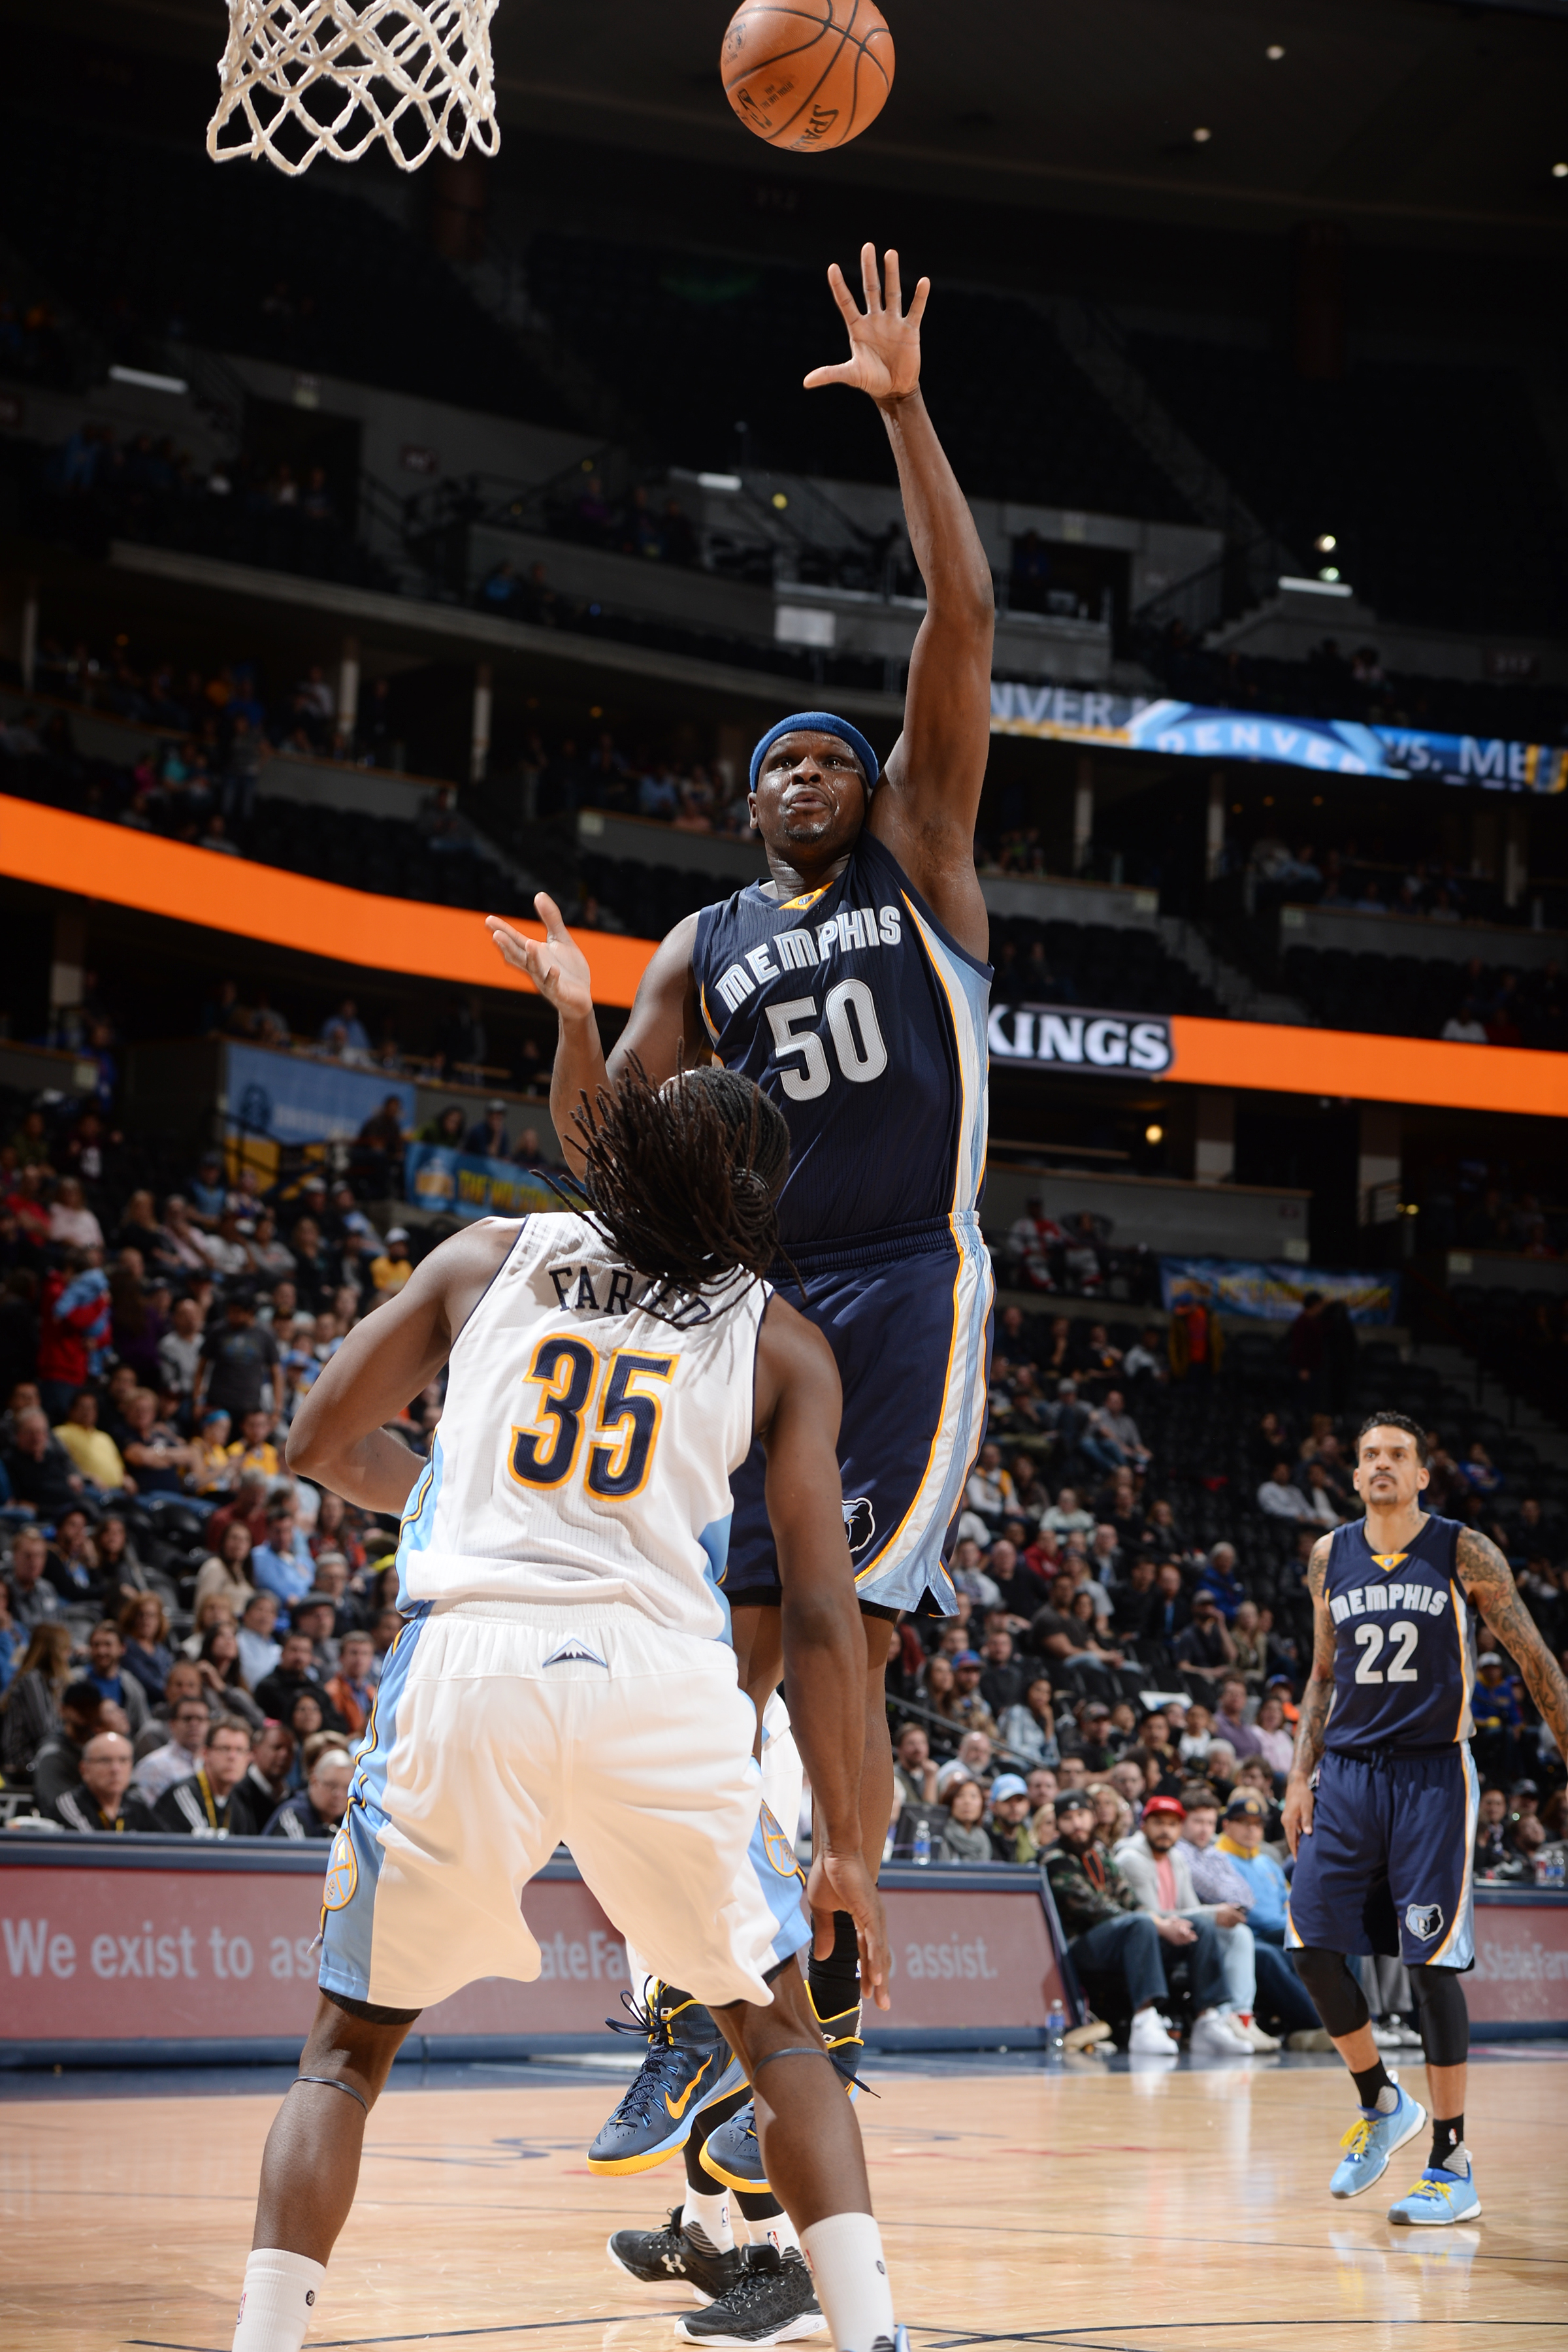 DENVER, CO - FEBRUARY 29:  Zach Randolph #50 of the Memphis Grizzlies shoots the ball against the Denver Nuggets on February 29, 2016 at the Pepsi Center in Denver, Colorado. (Photo by Garrett Ellwood/NBAE via Getty Images)